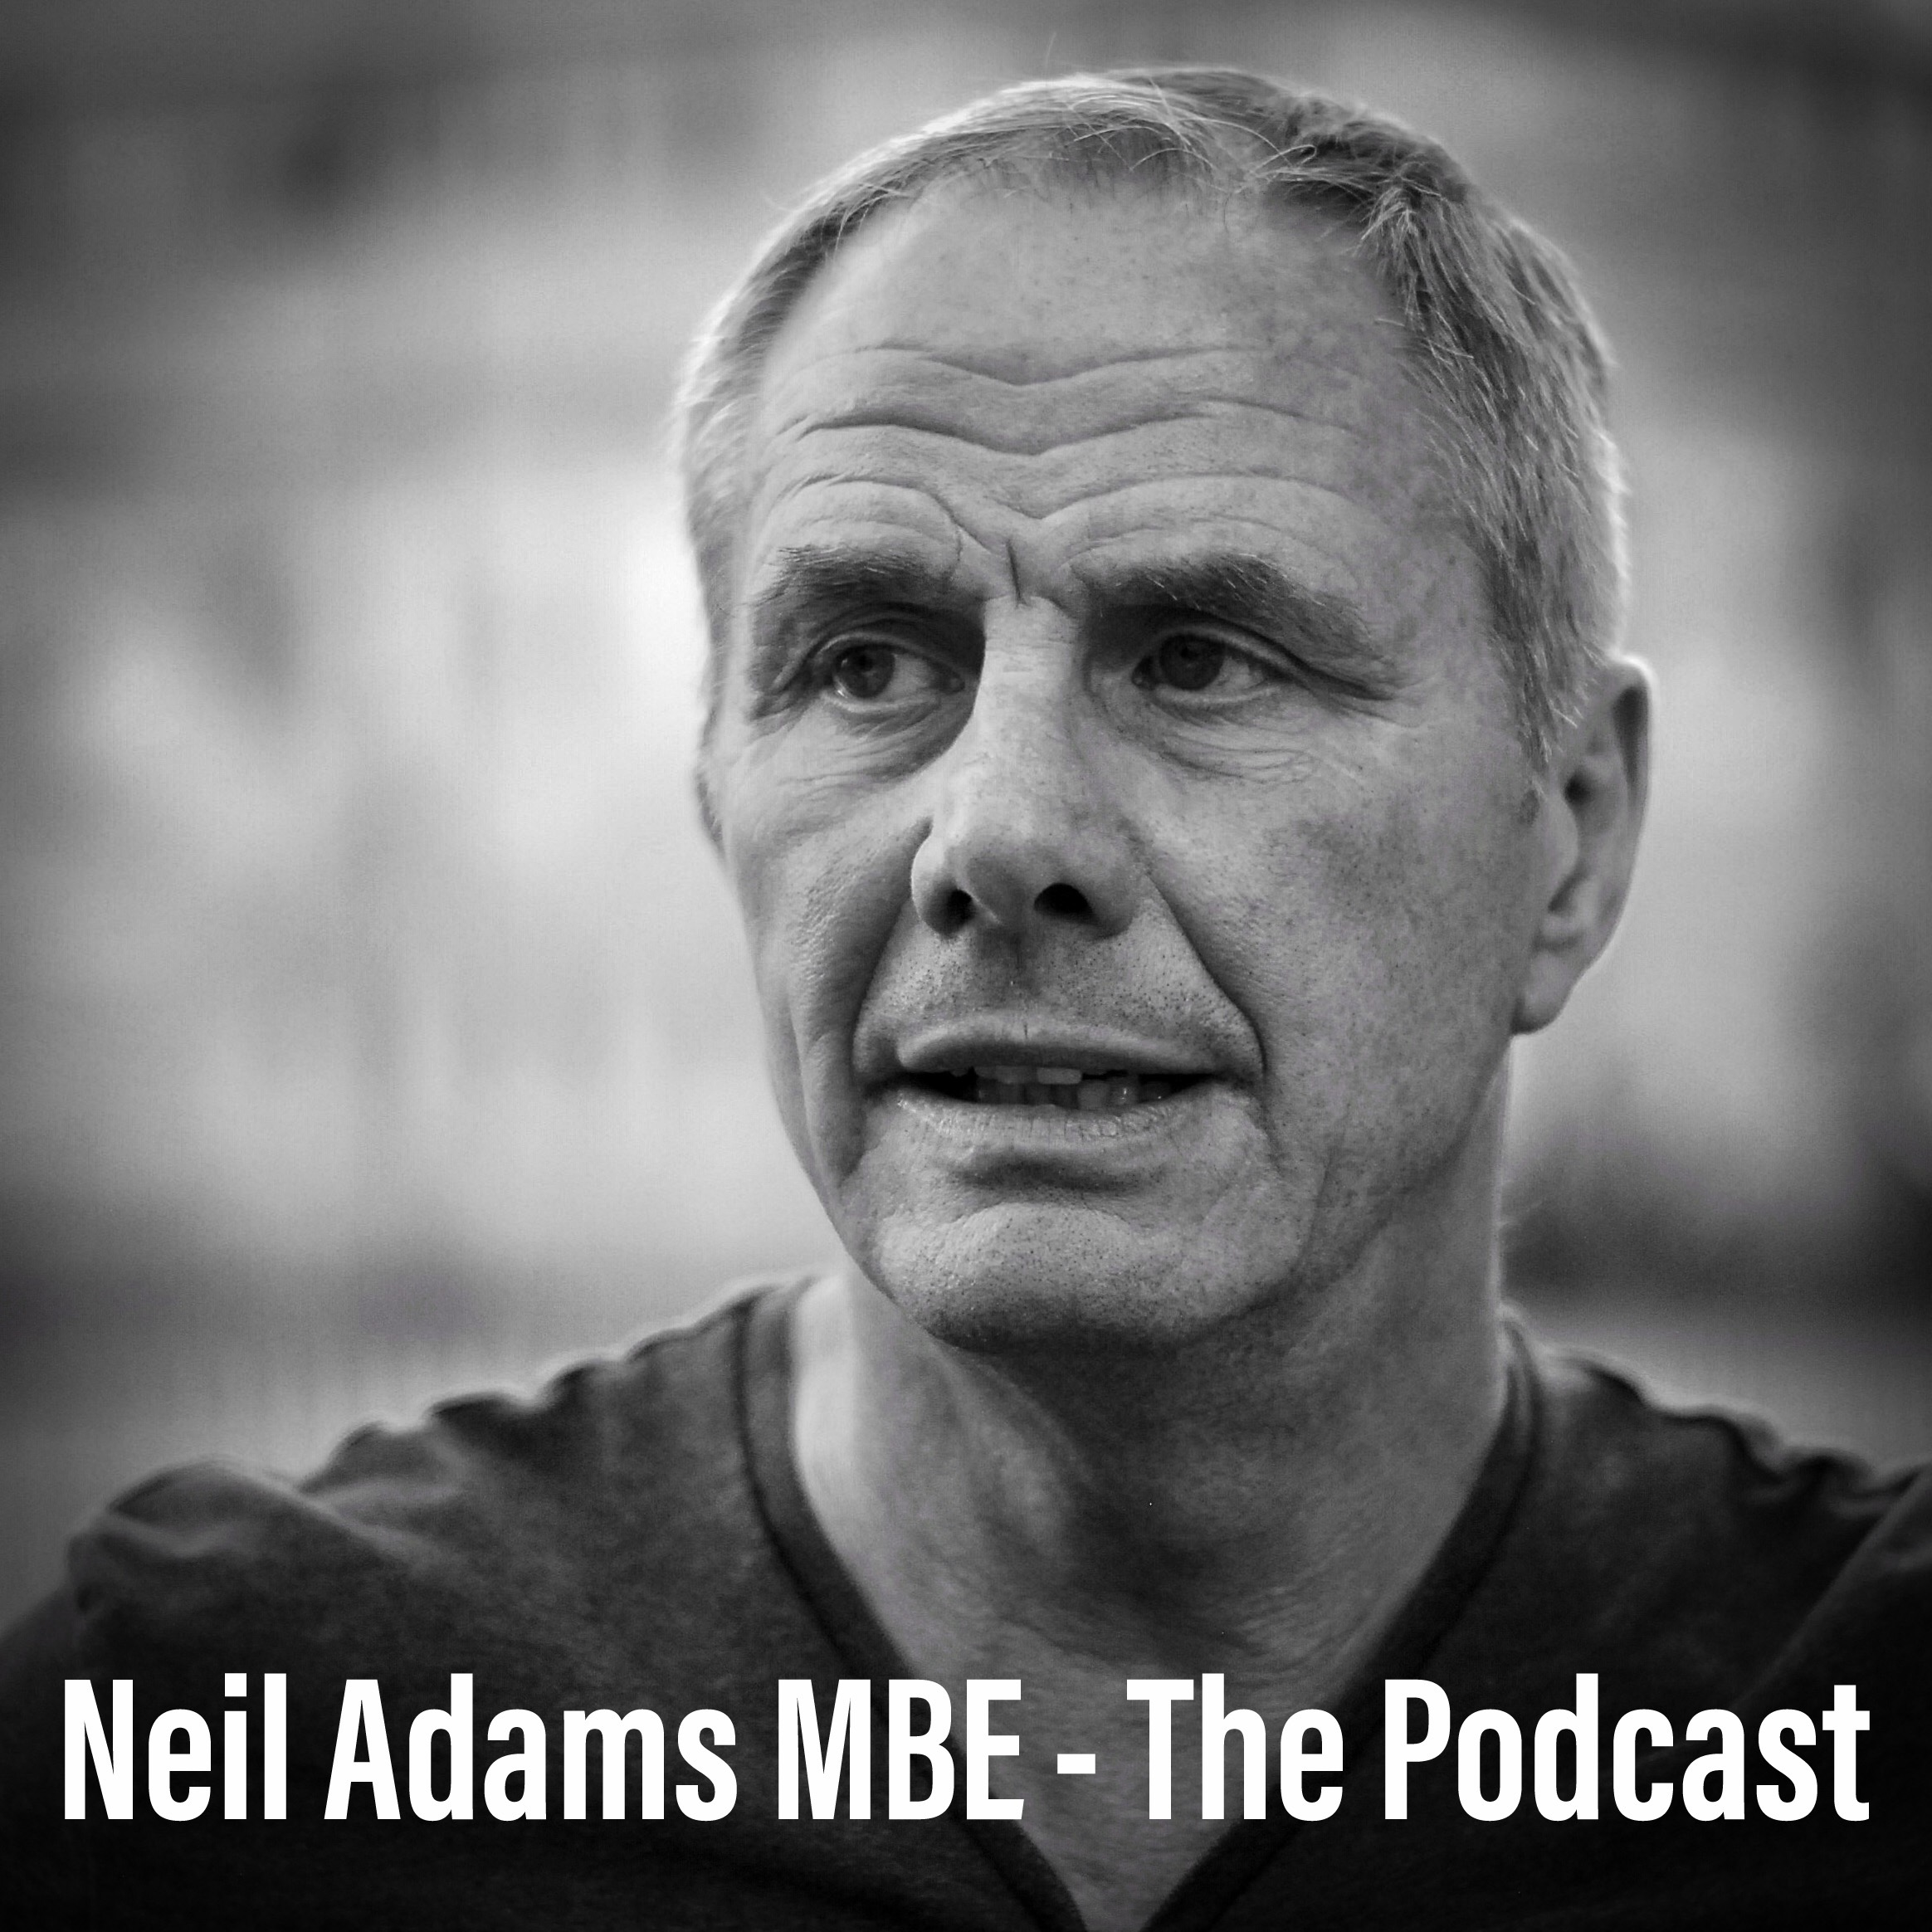 Neil AdamsMBE - The Podcast